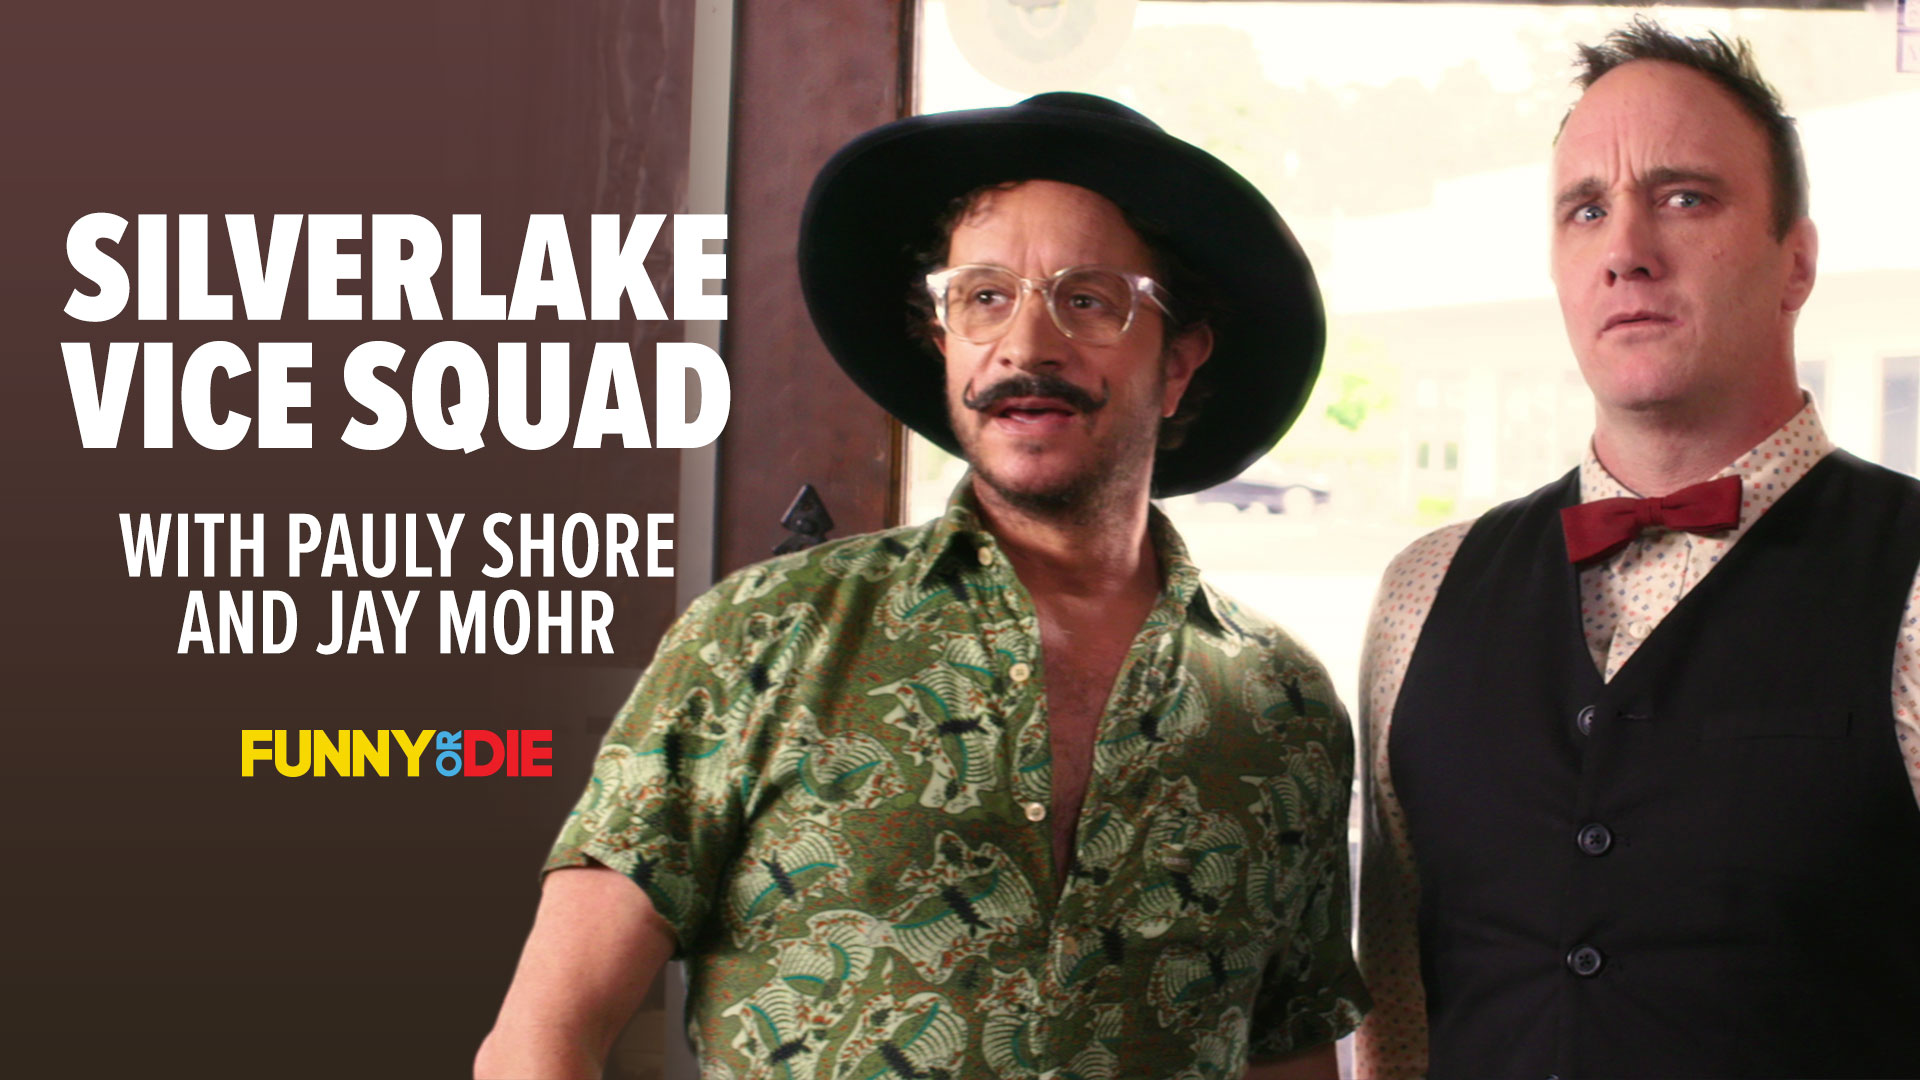 Silverlake Vice Squad with Pauly Shore and Jay Mohr